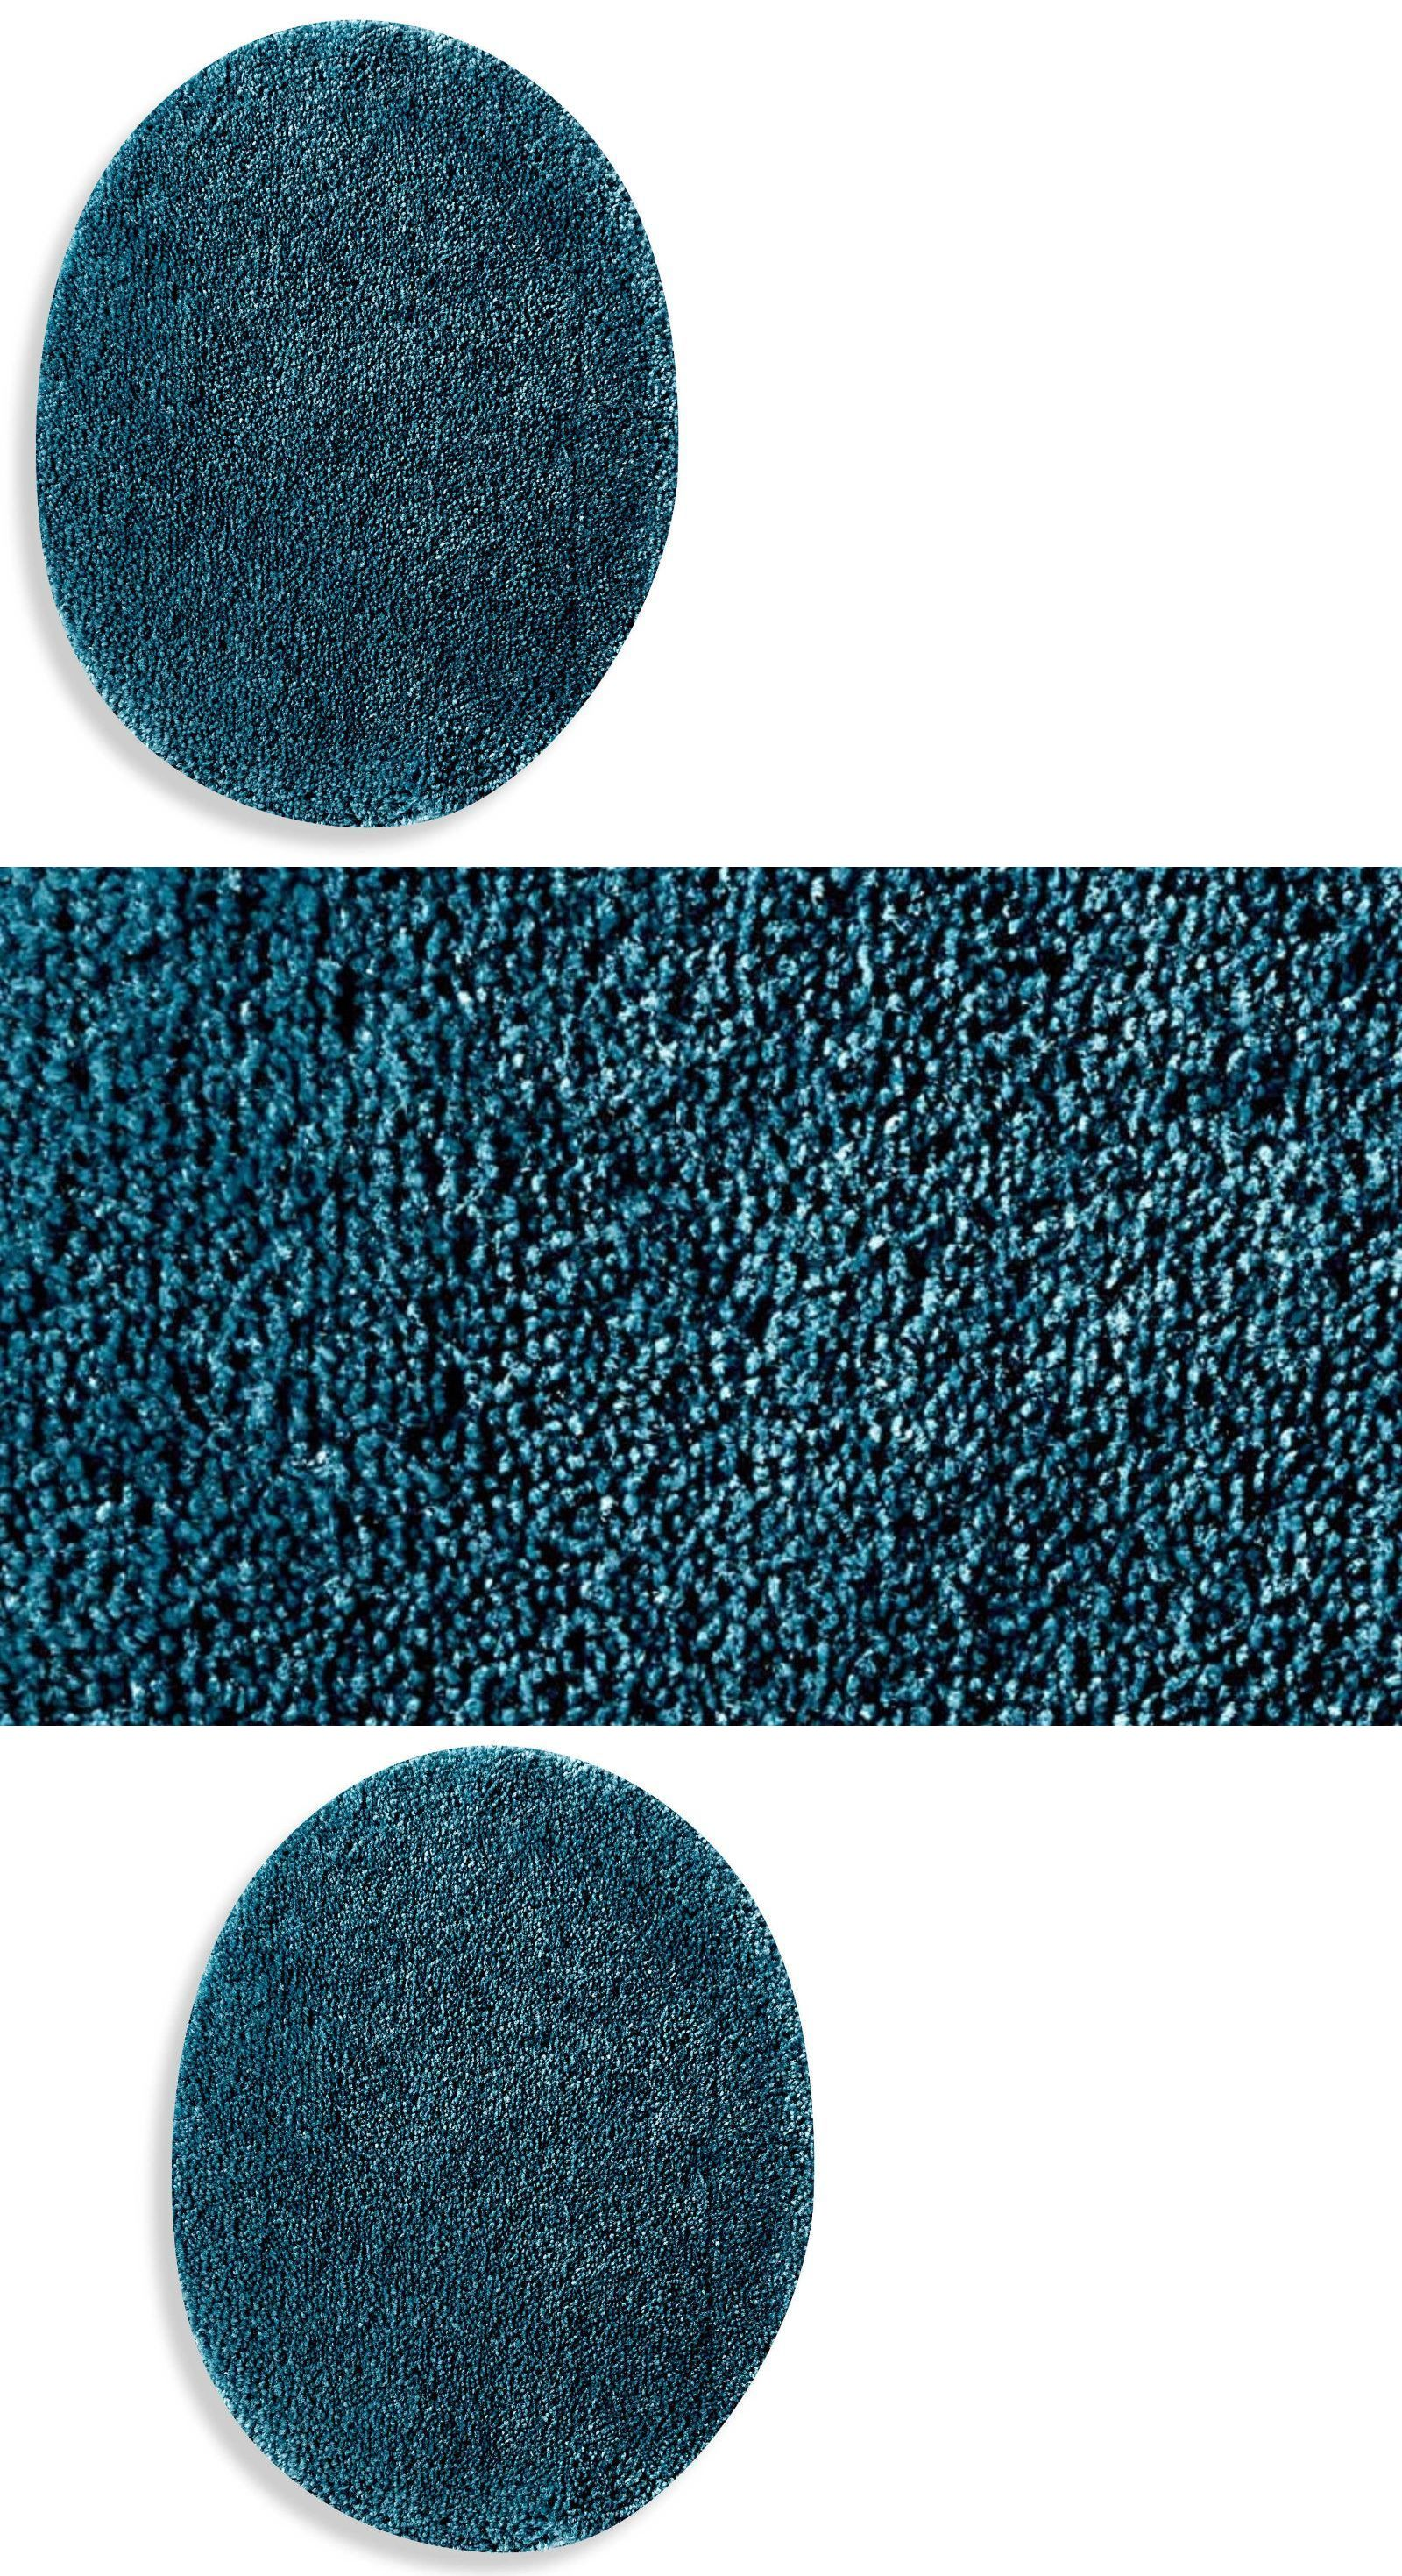 Bathmats Rugs And Toilet Covers 133696 Teal Blue Toilet Lid Cover